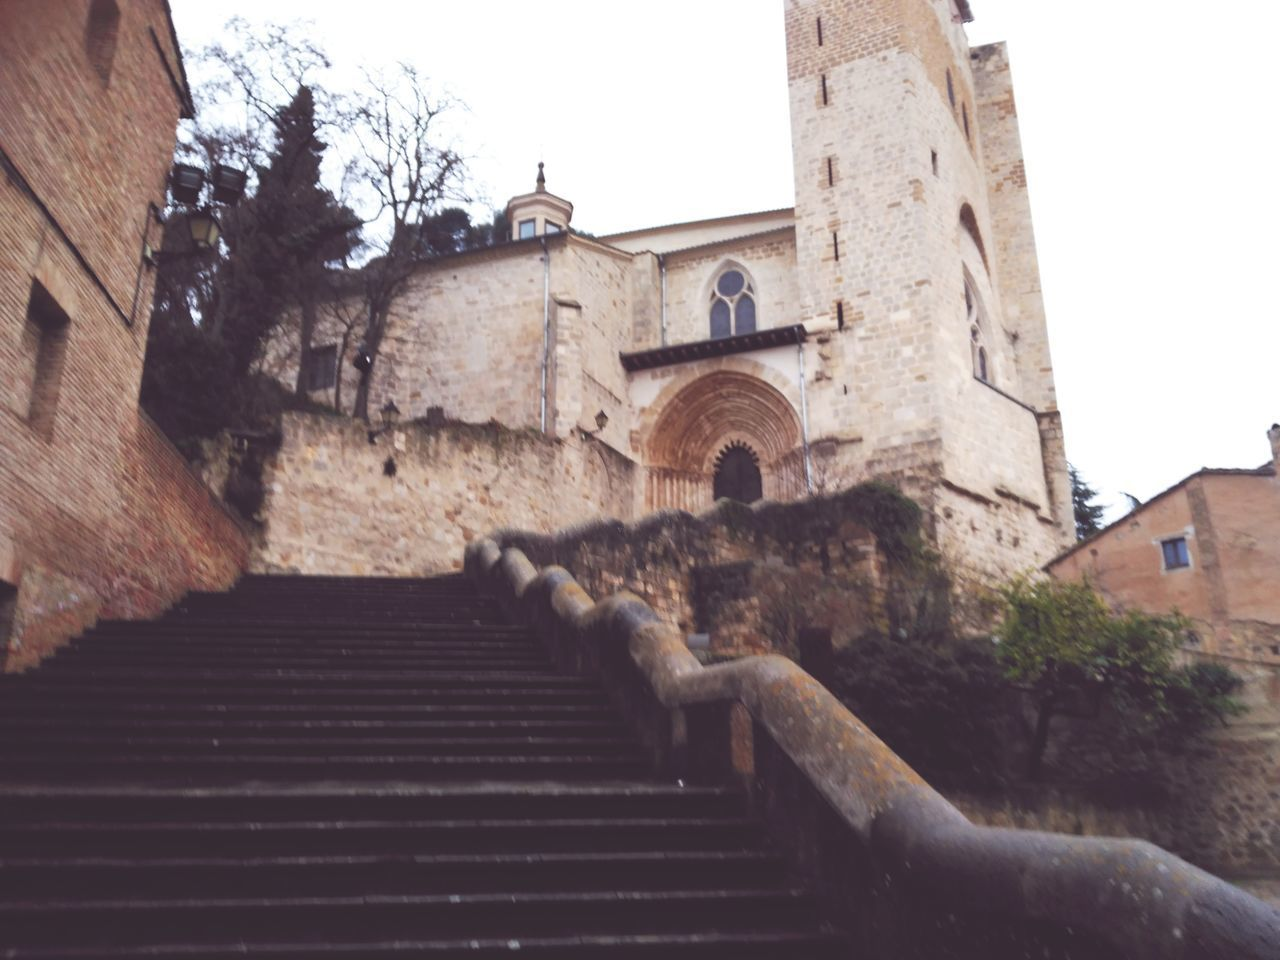 architecture, built structure, building exterior, steps, staircase, steps and staircases, no people, low angle view, castle, history, day, tree, outdoors, place of worship, sky, tiled roof